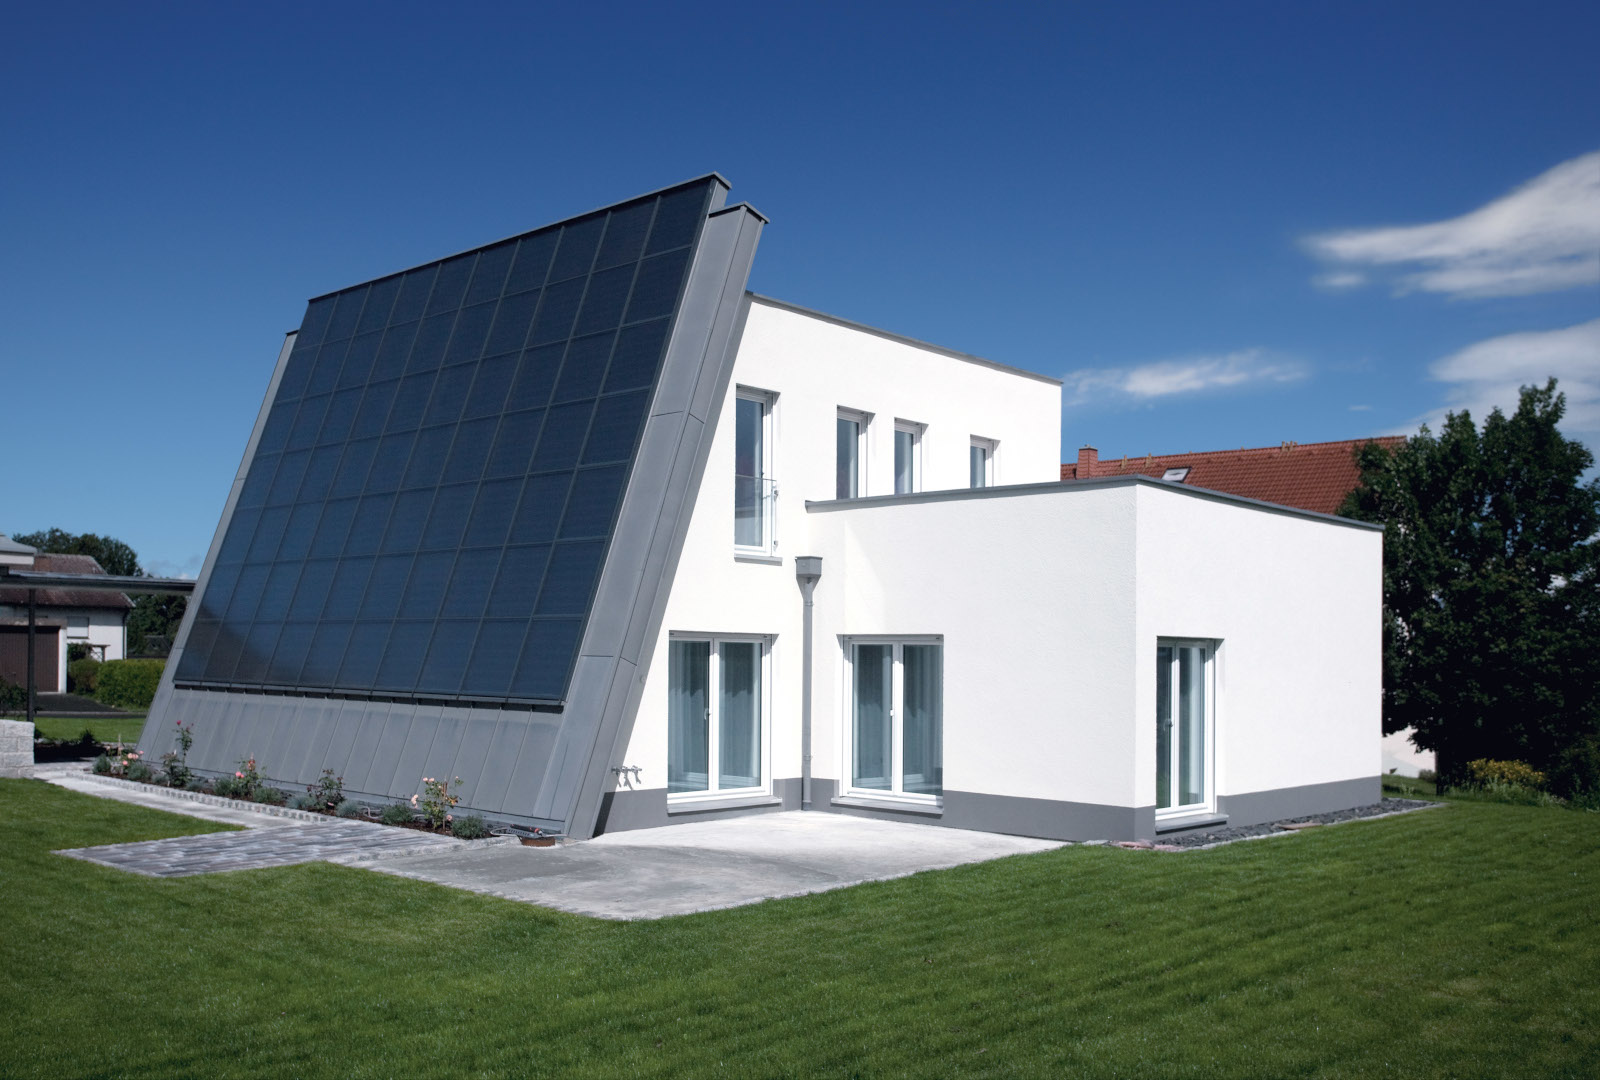 Fenster Bauhaus From Bauhaus To Solar House